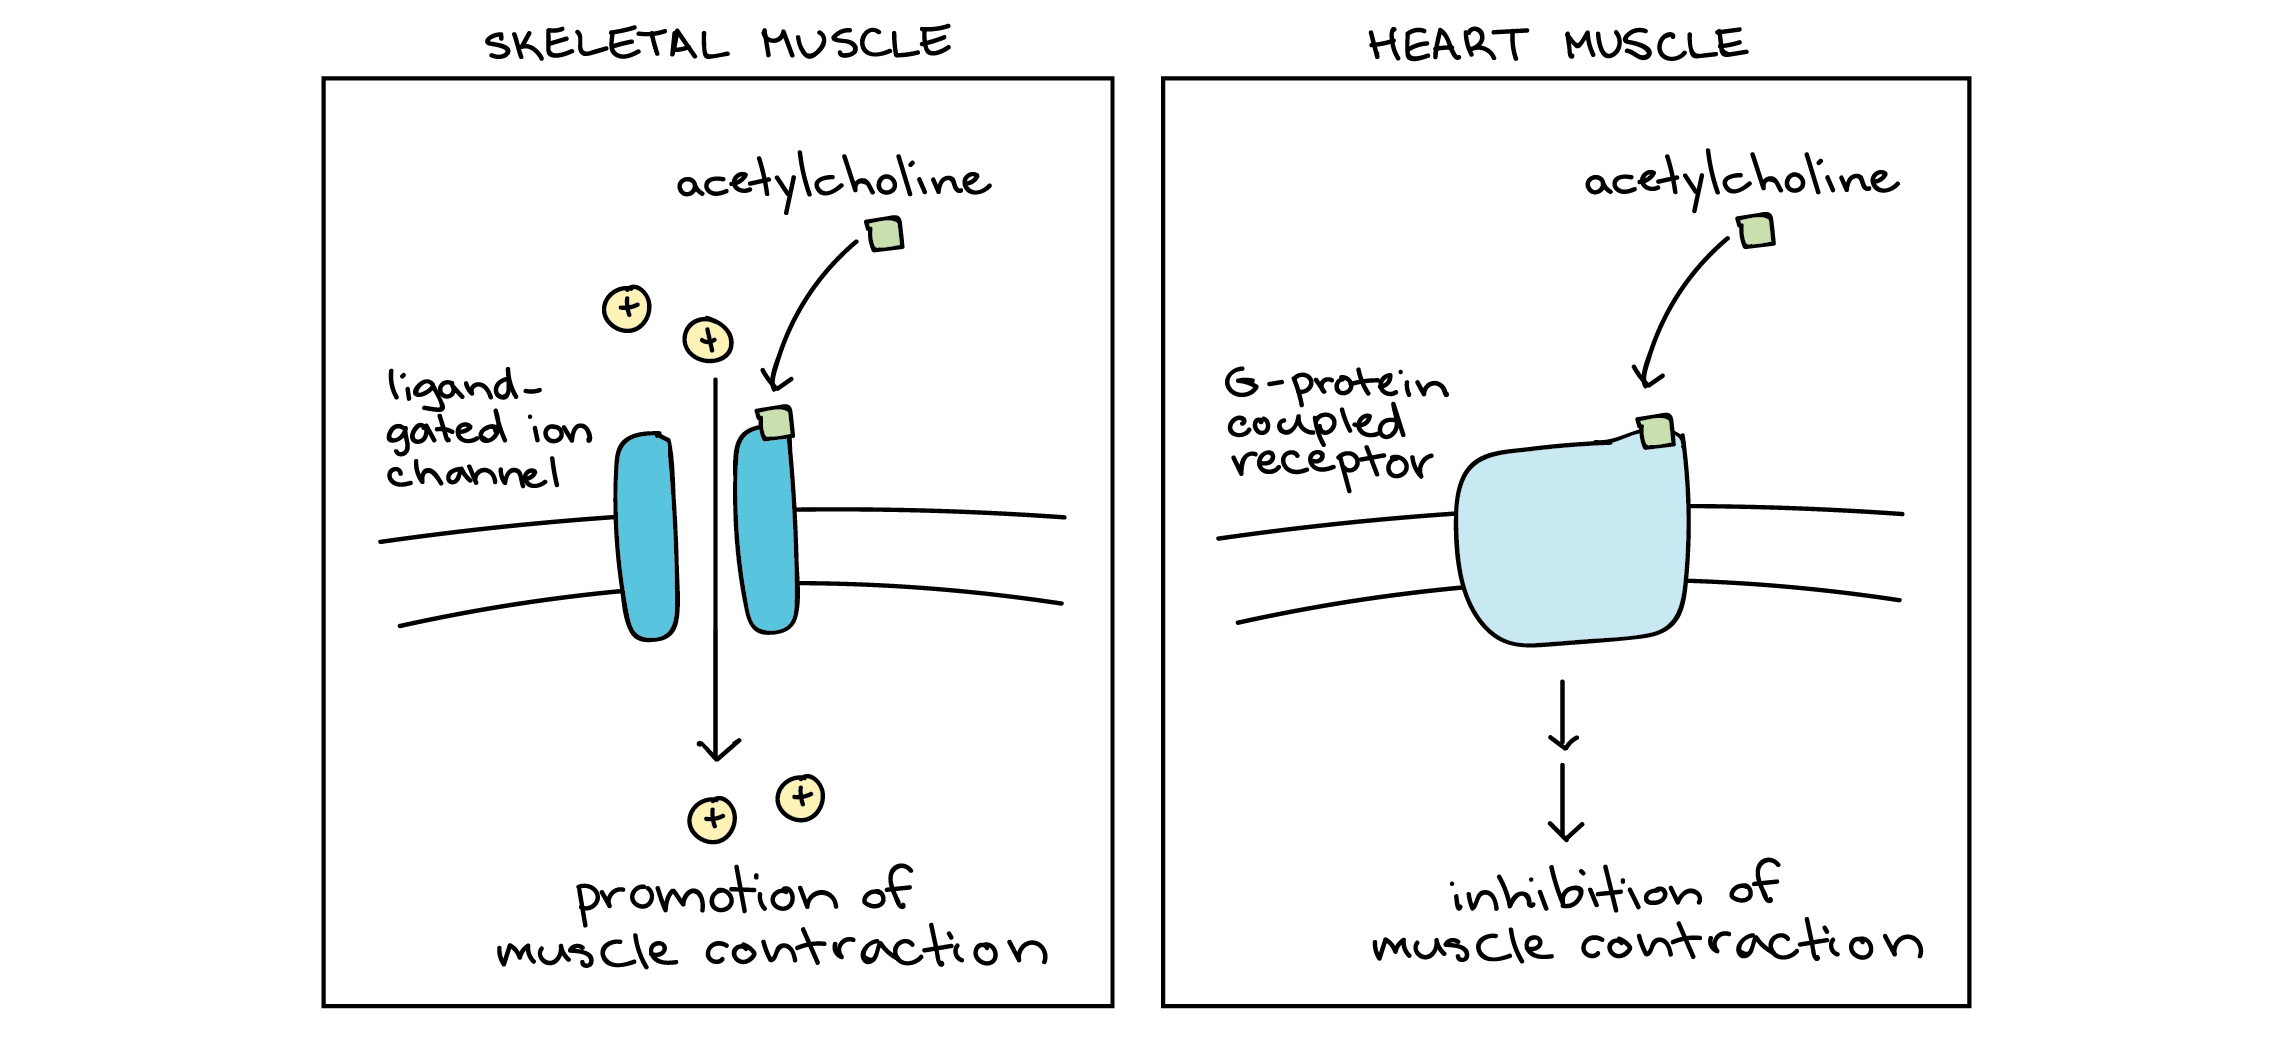 Signal Transduction Pathway Cell Signaling Article Khan Academy This Diagram Shows The Muscles In Heart Type Specificity Response To Acetylcholine Left Panel Skeletal Muscle